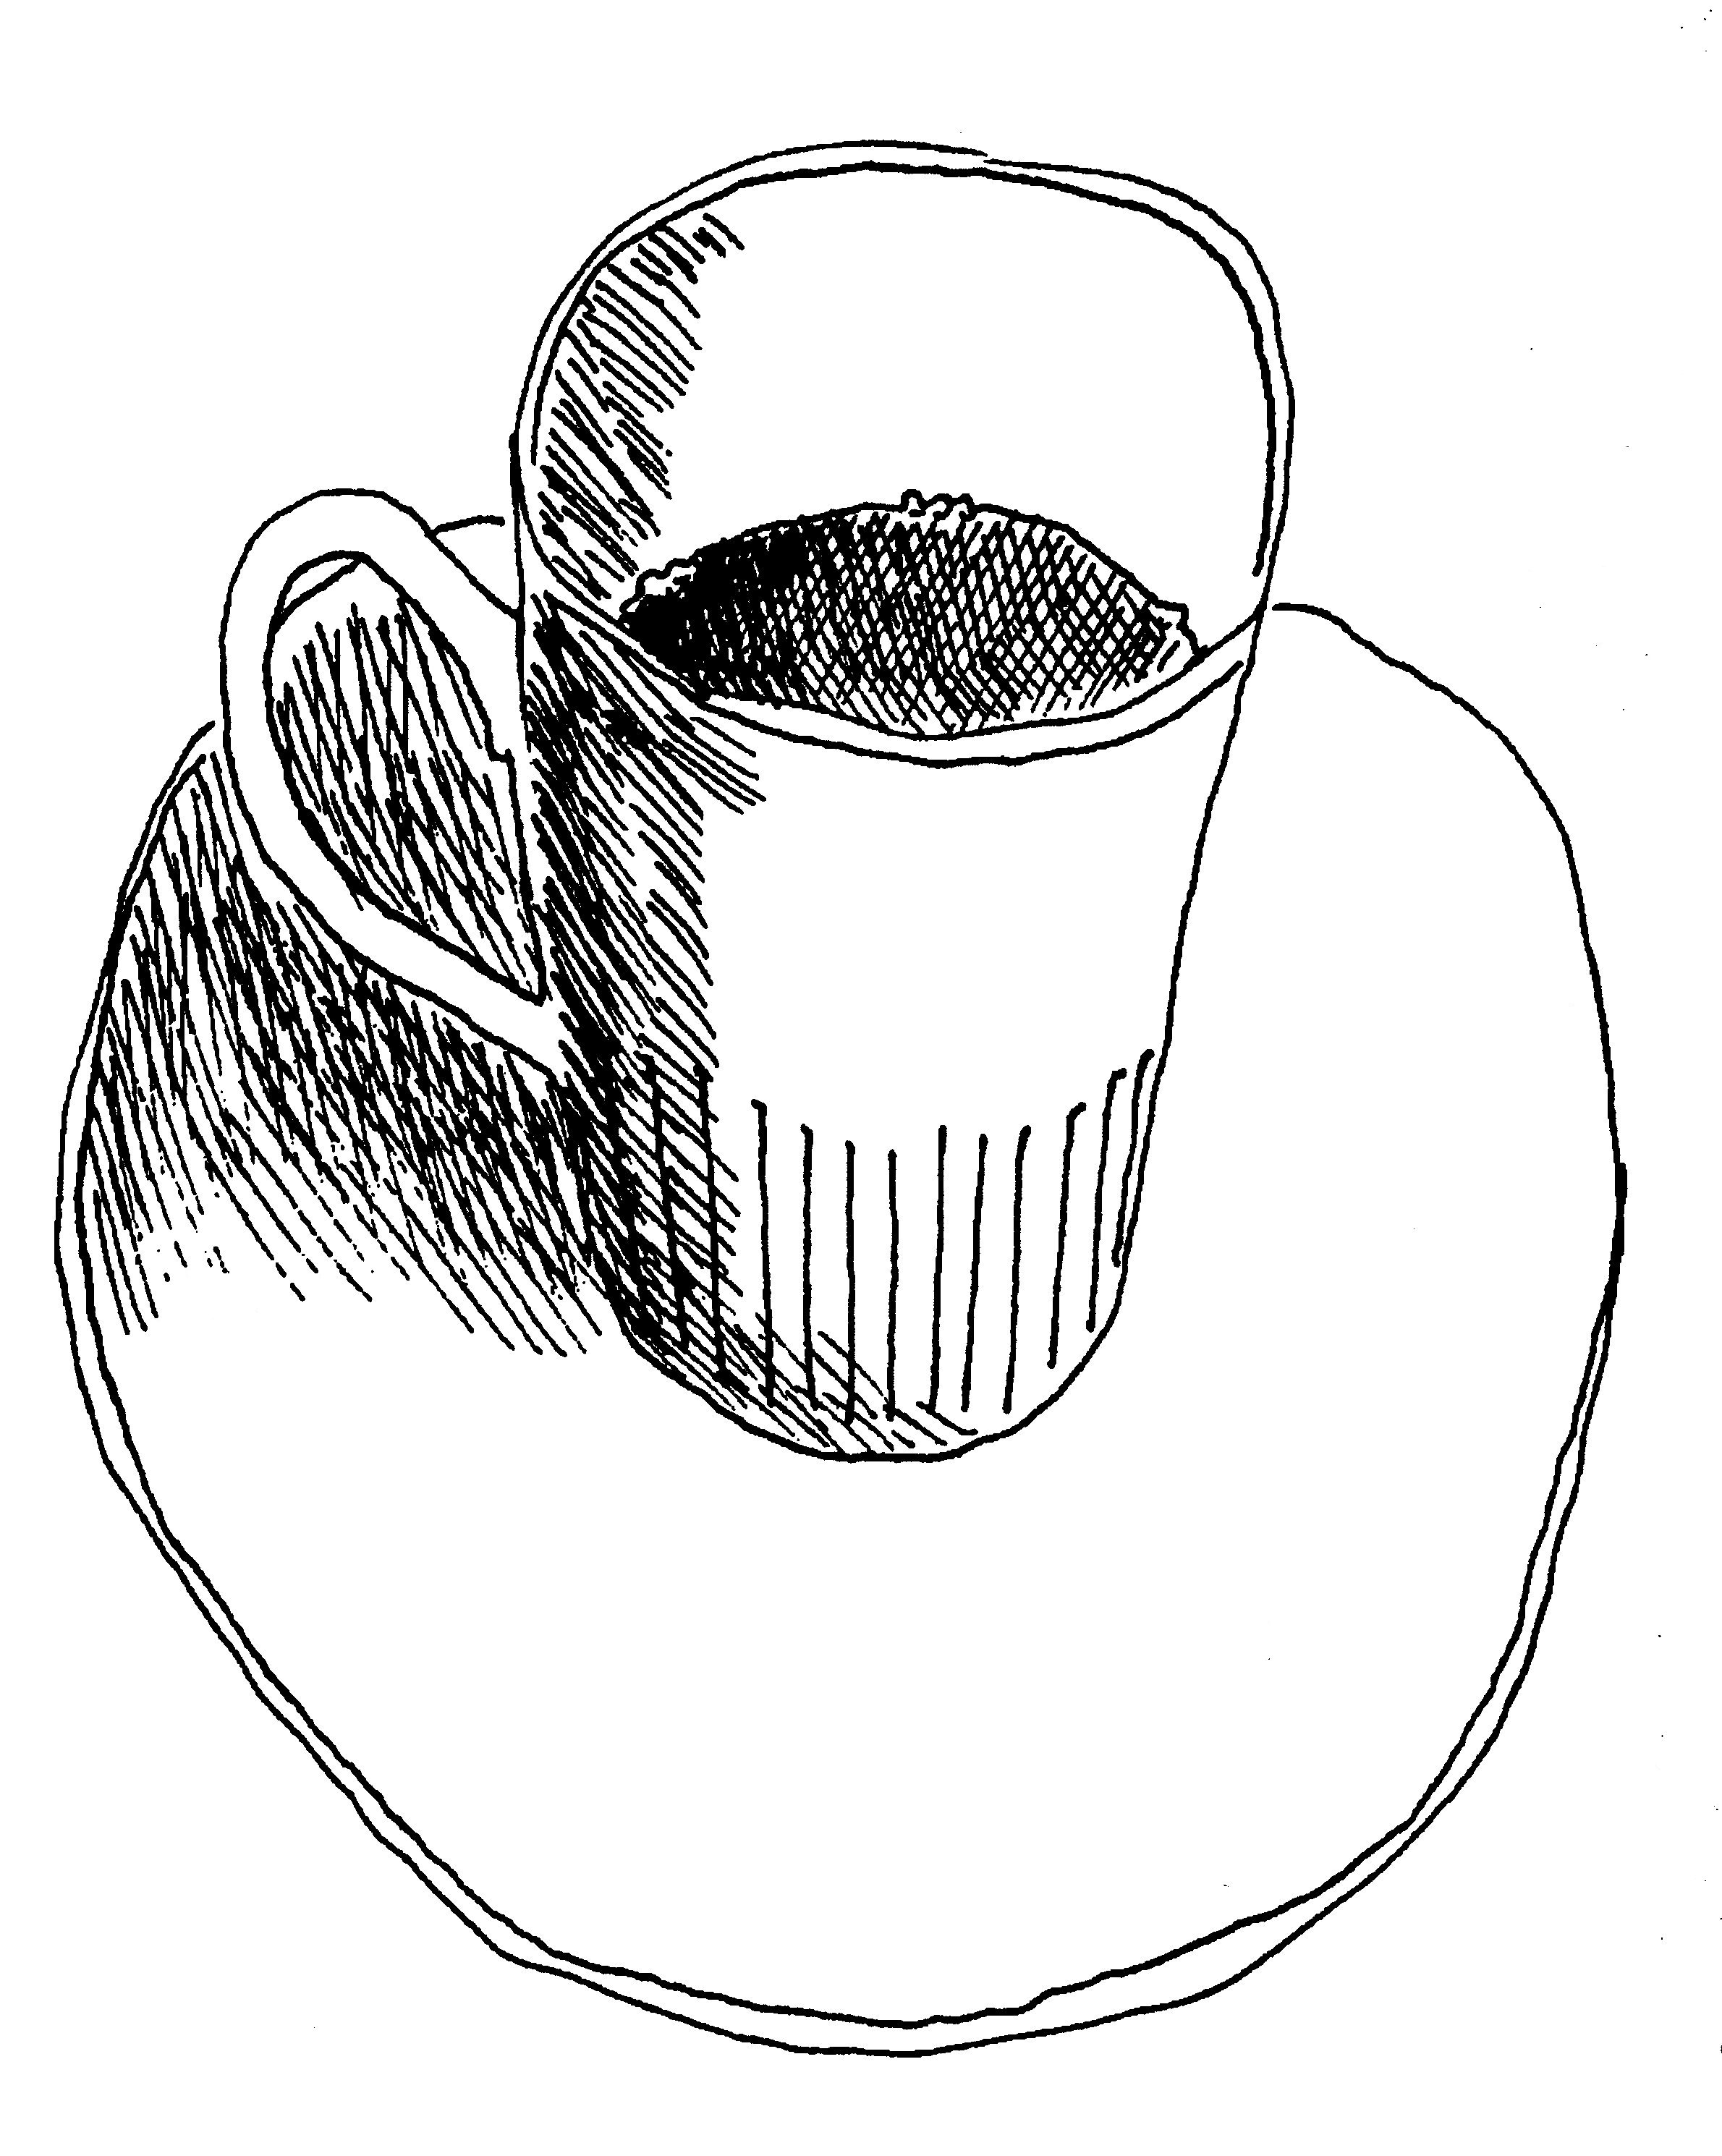 Cup 3  by Jim Forest. Published with permission.